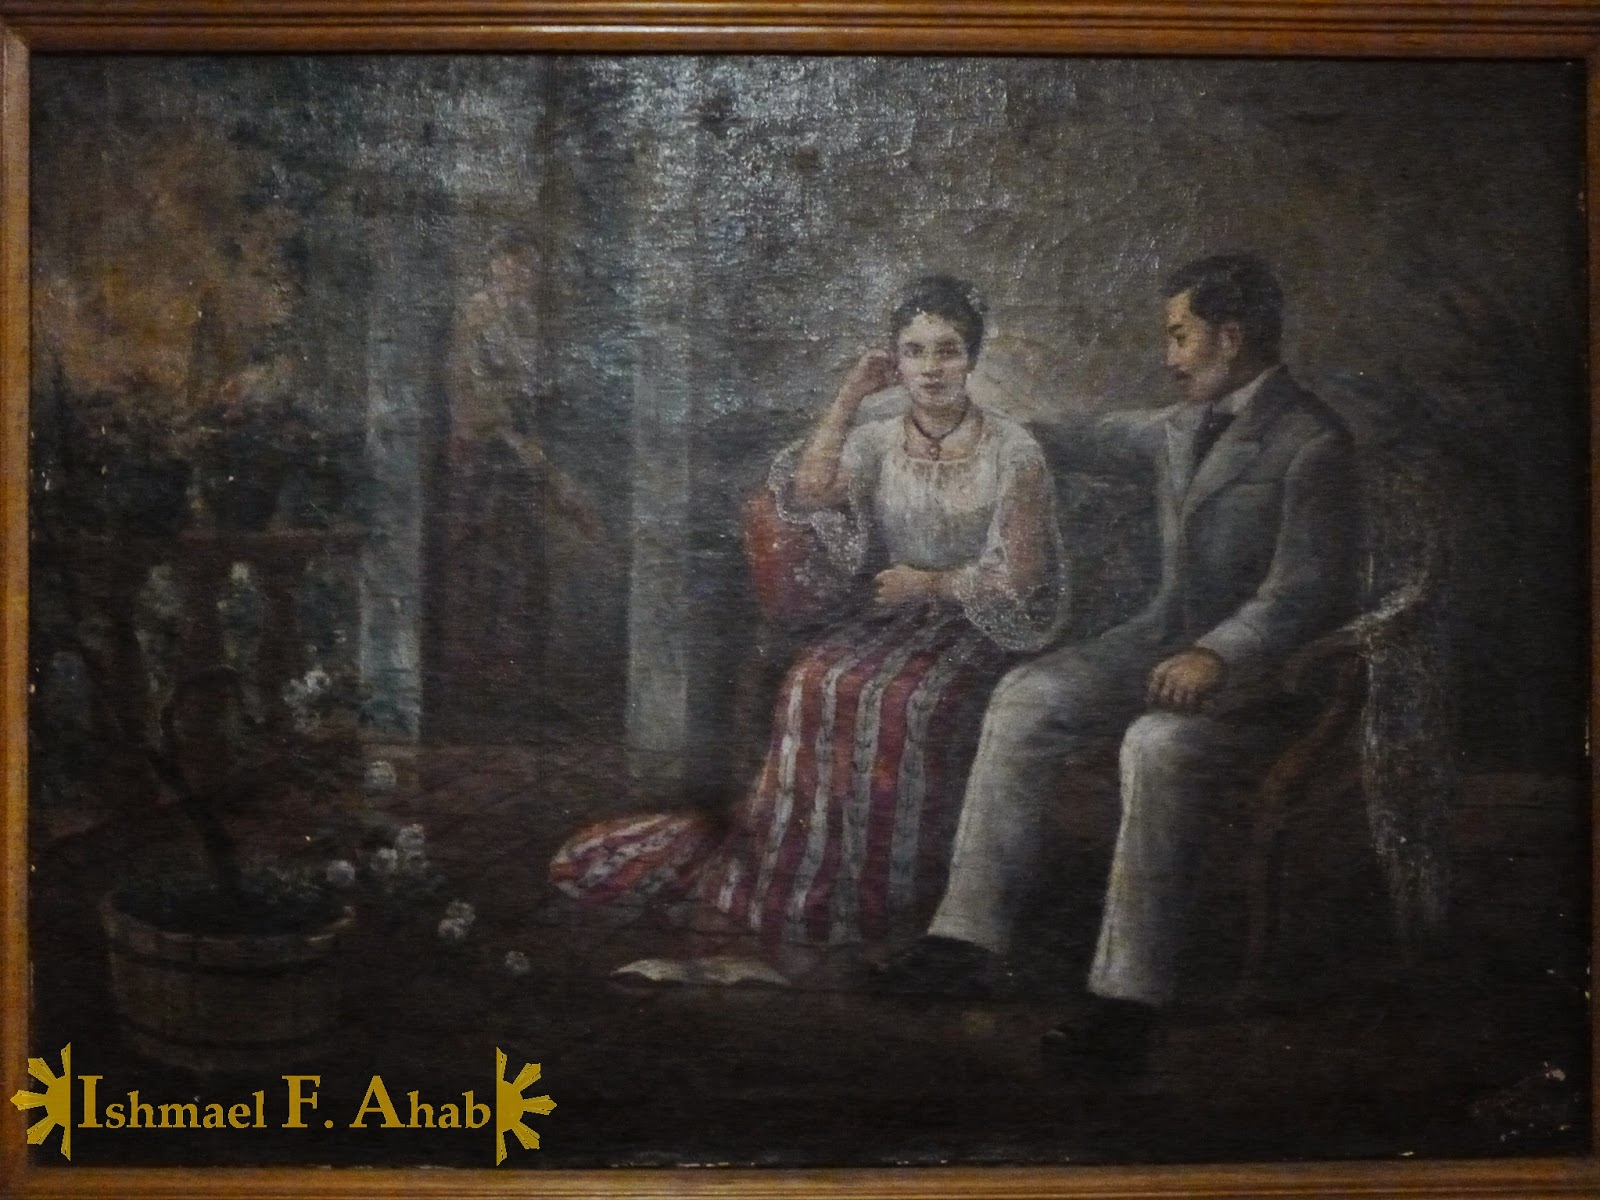 rizal s national consciousness He created a national consciousness by writing the history of the nation with his camera, and in terms of contemporary influence, can be compared with josé rizal by spreading tagalog culture, nepomuceno made filipino national culture converge with tagalog culture.